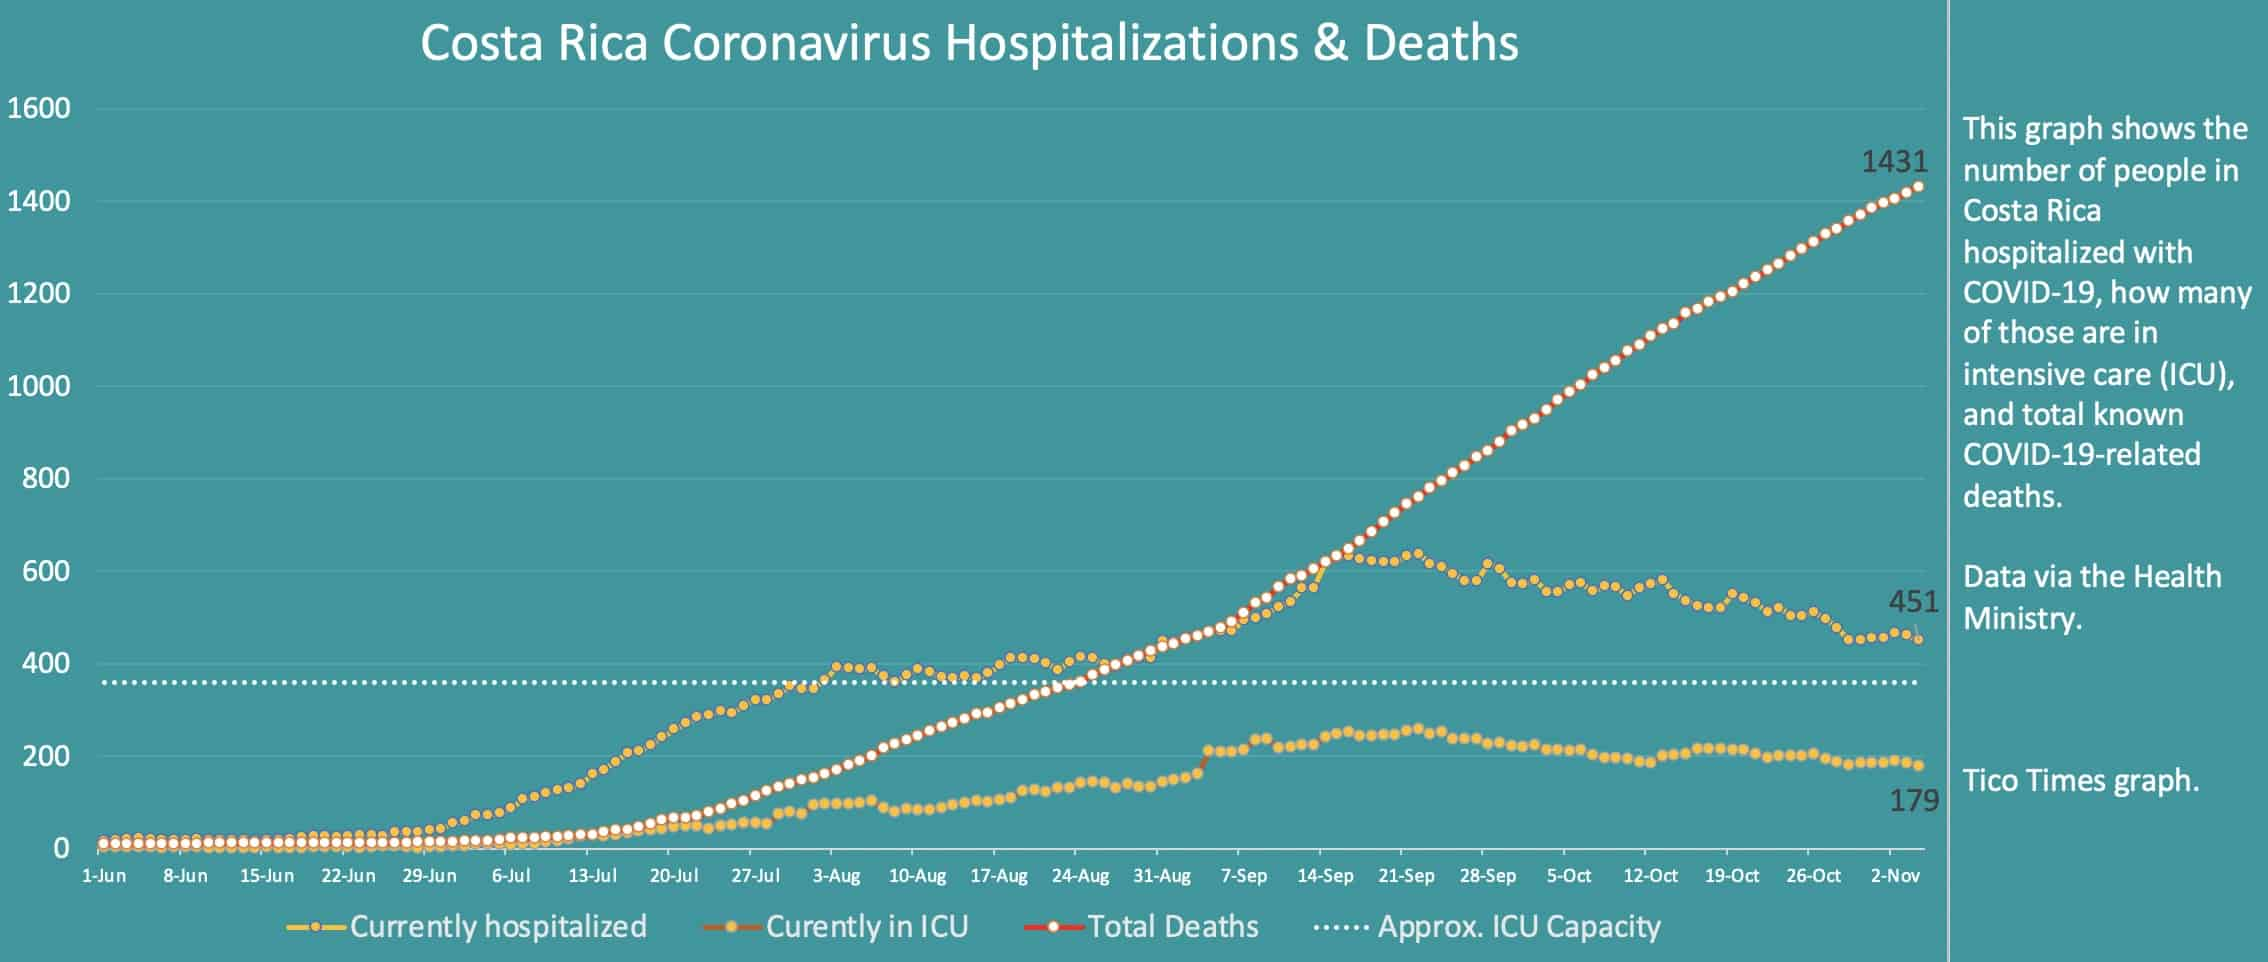 Costa Rica coronavirus hospitalizations and deaths on November 4, 2020